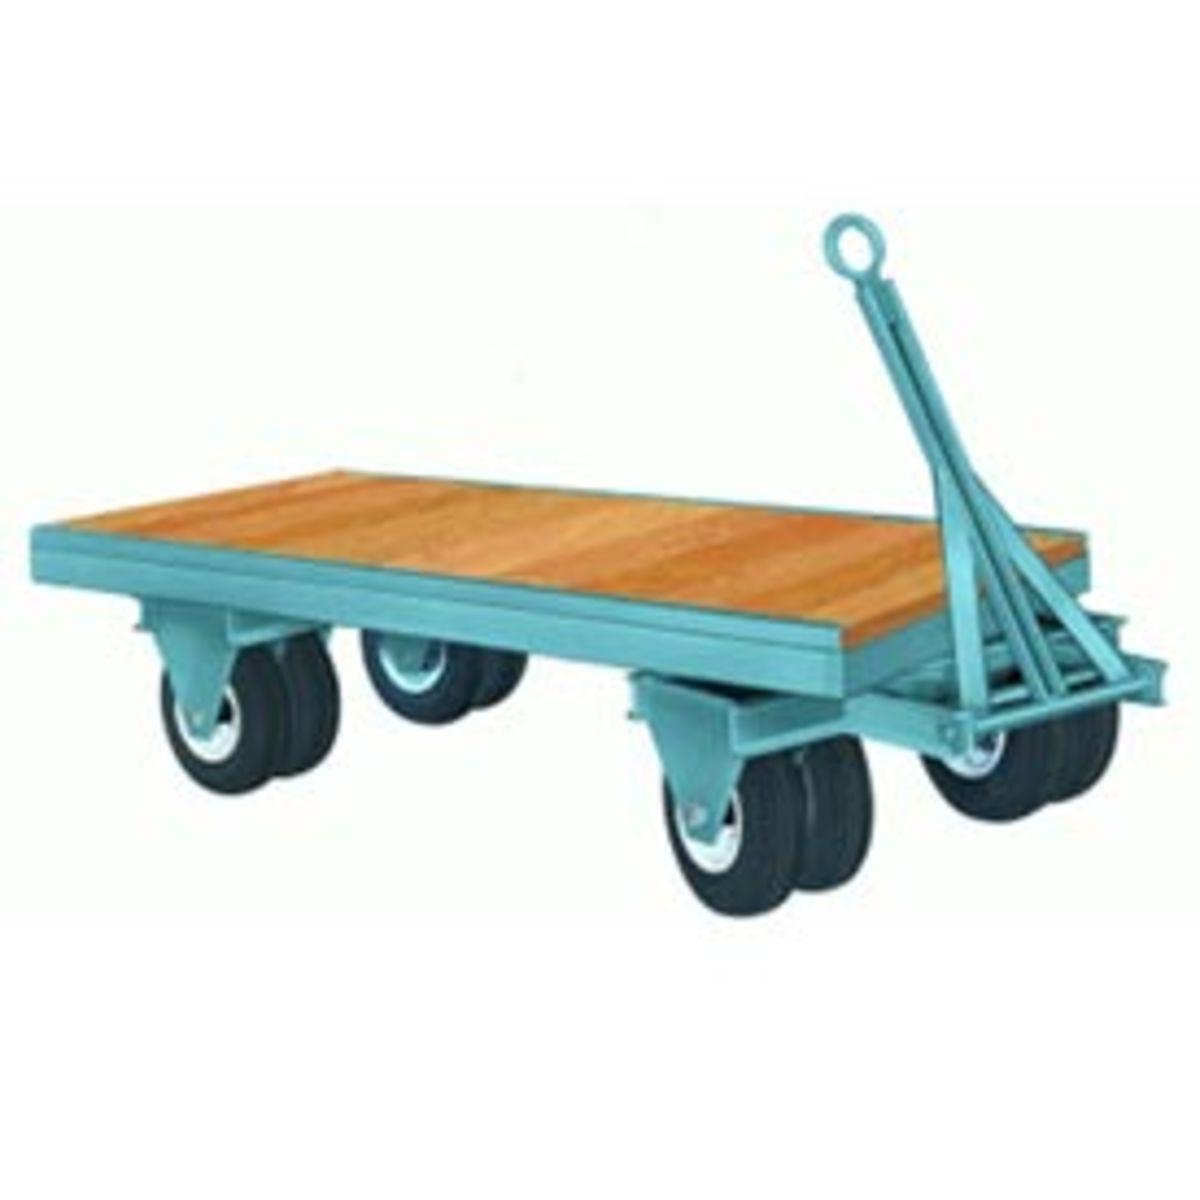 """This 42"""" x 84"""" fifth-wheel-steer trailer features a deck of 1 ½"""" select hardwood with 12"""" x 4"""" Moldon Rubber wheels. Trailer designed for power towing. 1-1/4"""" tapered roller bearings with lube fittings rotate on 1-1/4"""" diameter axles........"""